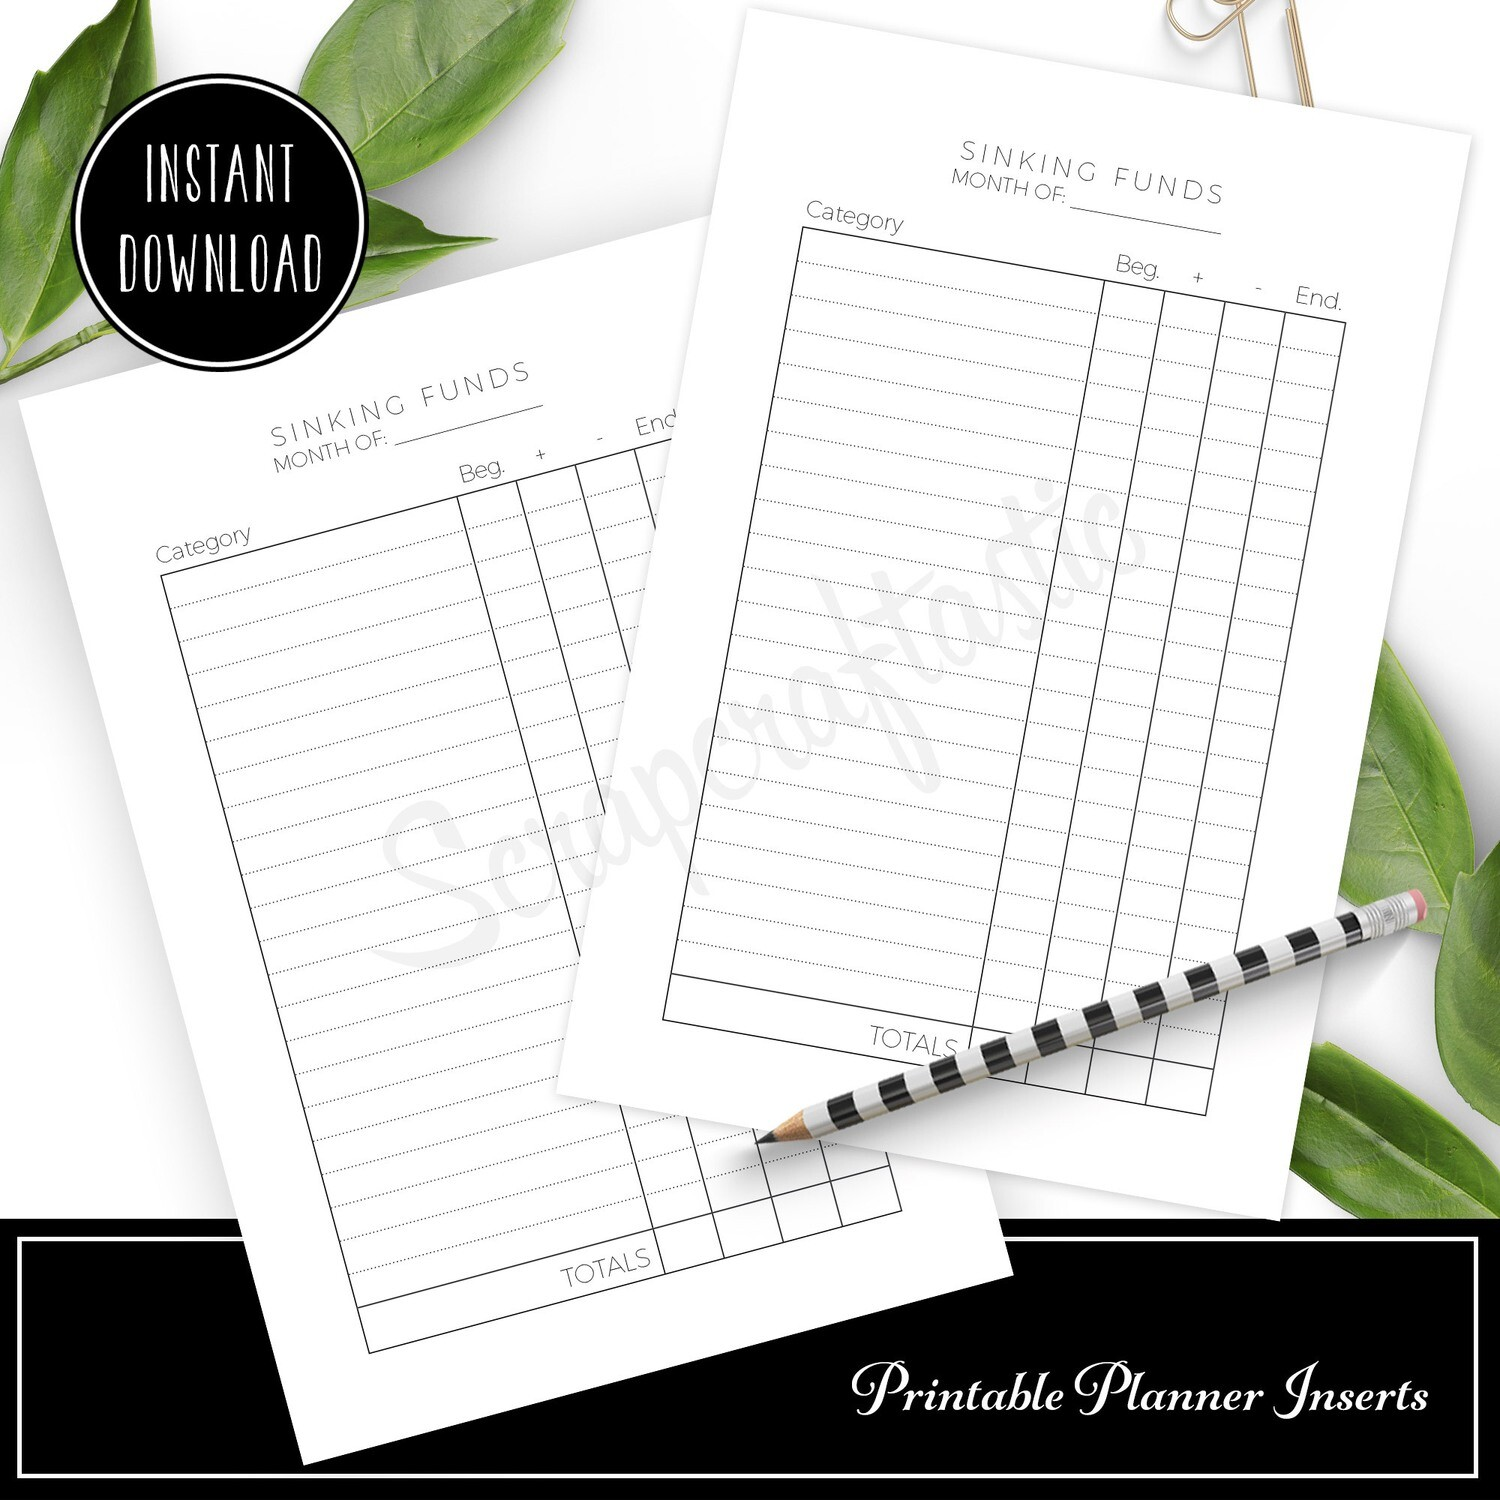 B6 - Sinking Funds Budget Printable Planner Inserts